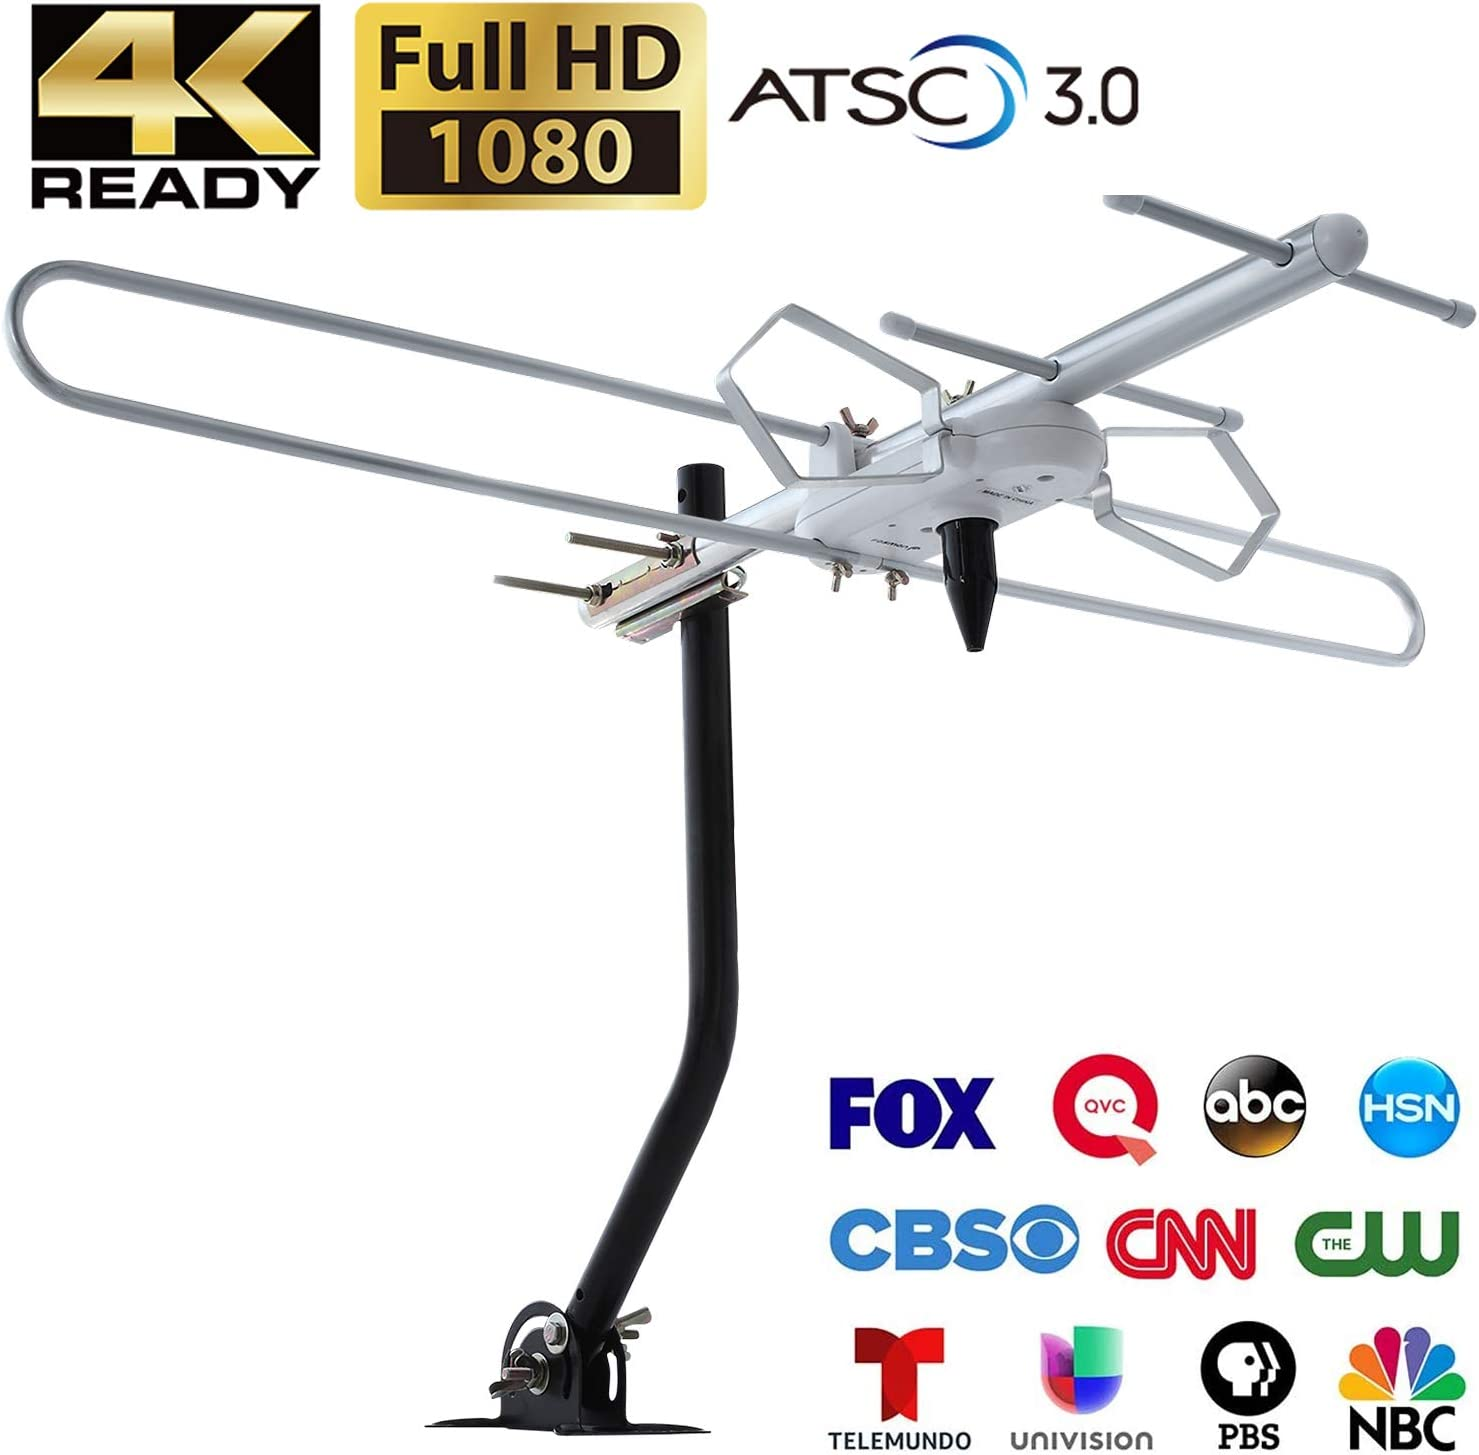 Fosmon Attic TV Antenna Up to 120 Miles Range (2020 Version), Supports 4K Ultra HD (ASTC 3.0) 1080P Digital HDTV VHF UHF, Outdoor/Indoor Roof Long Range Directional HDTV Antenna with Mounting Pole